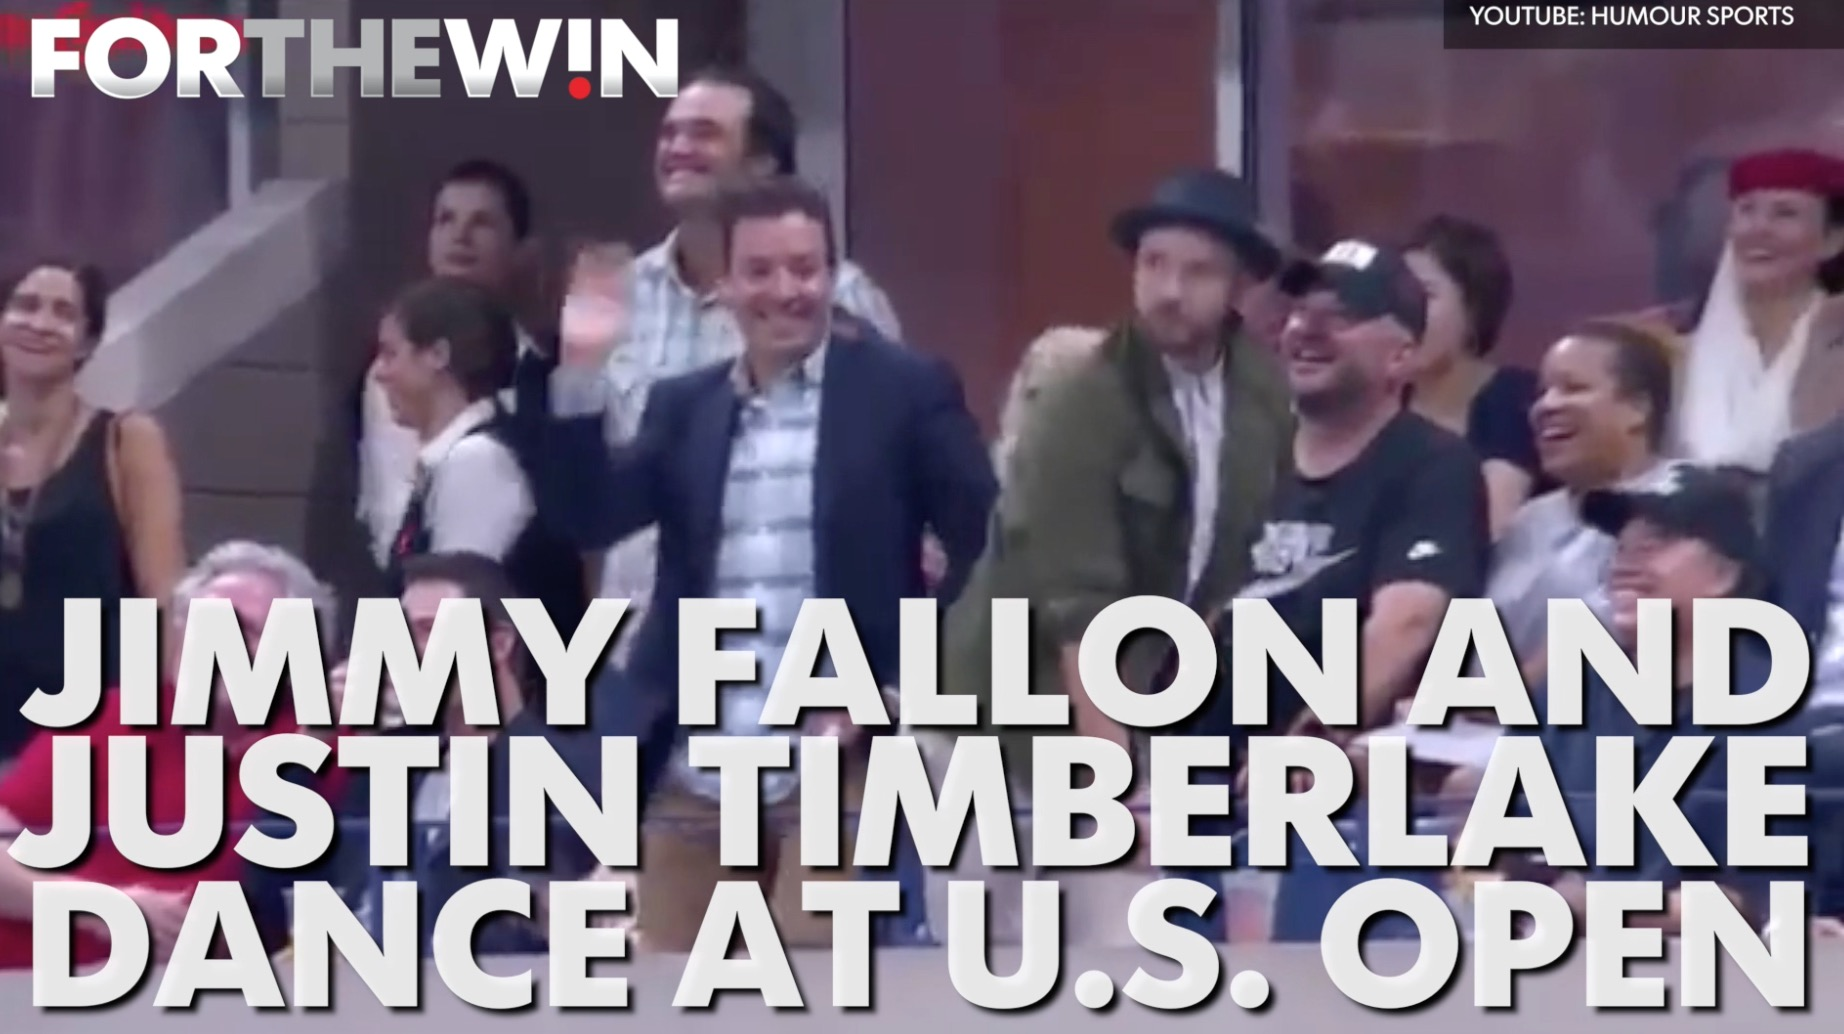 Jimmy Fallon and Justin Timberlake dance at the U.S. Open